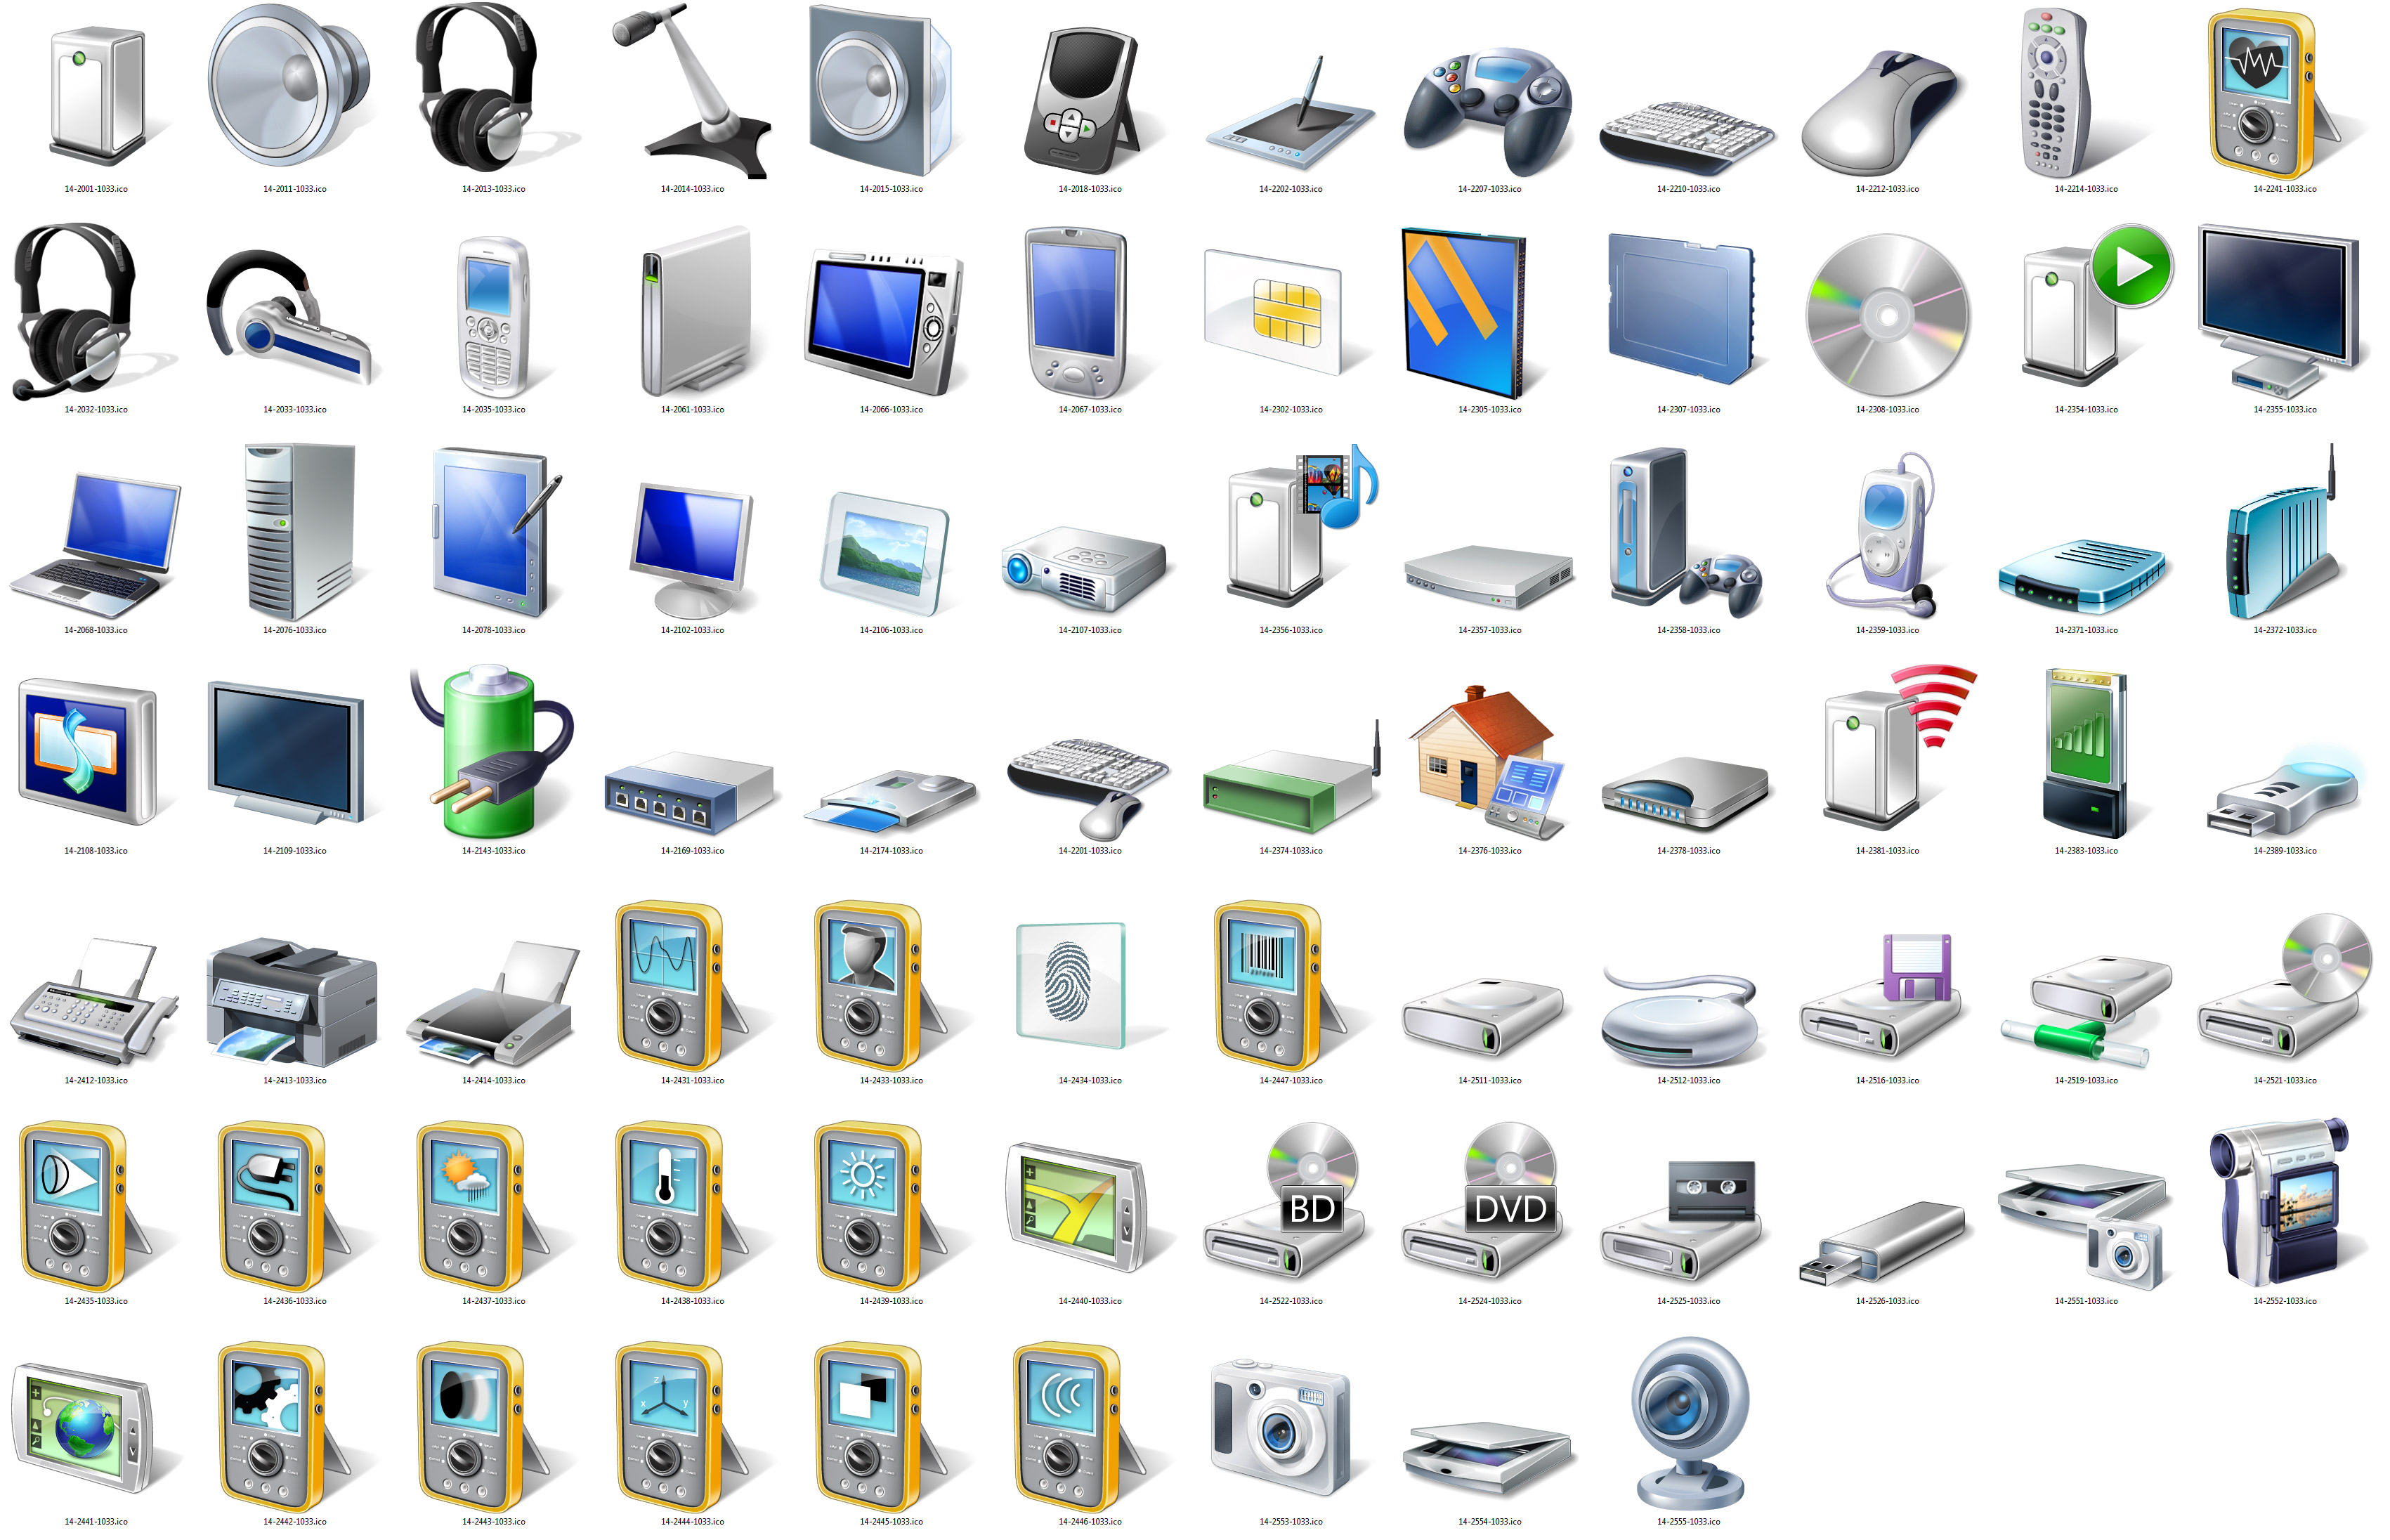 Admiring Windows 7's high-resolution device icons ...